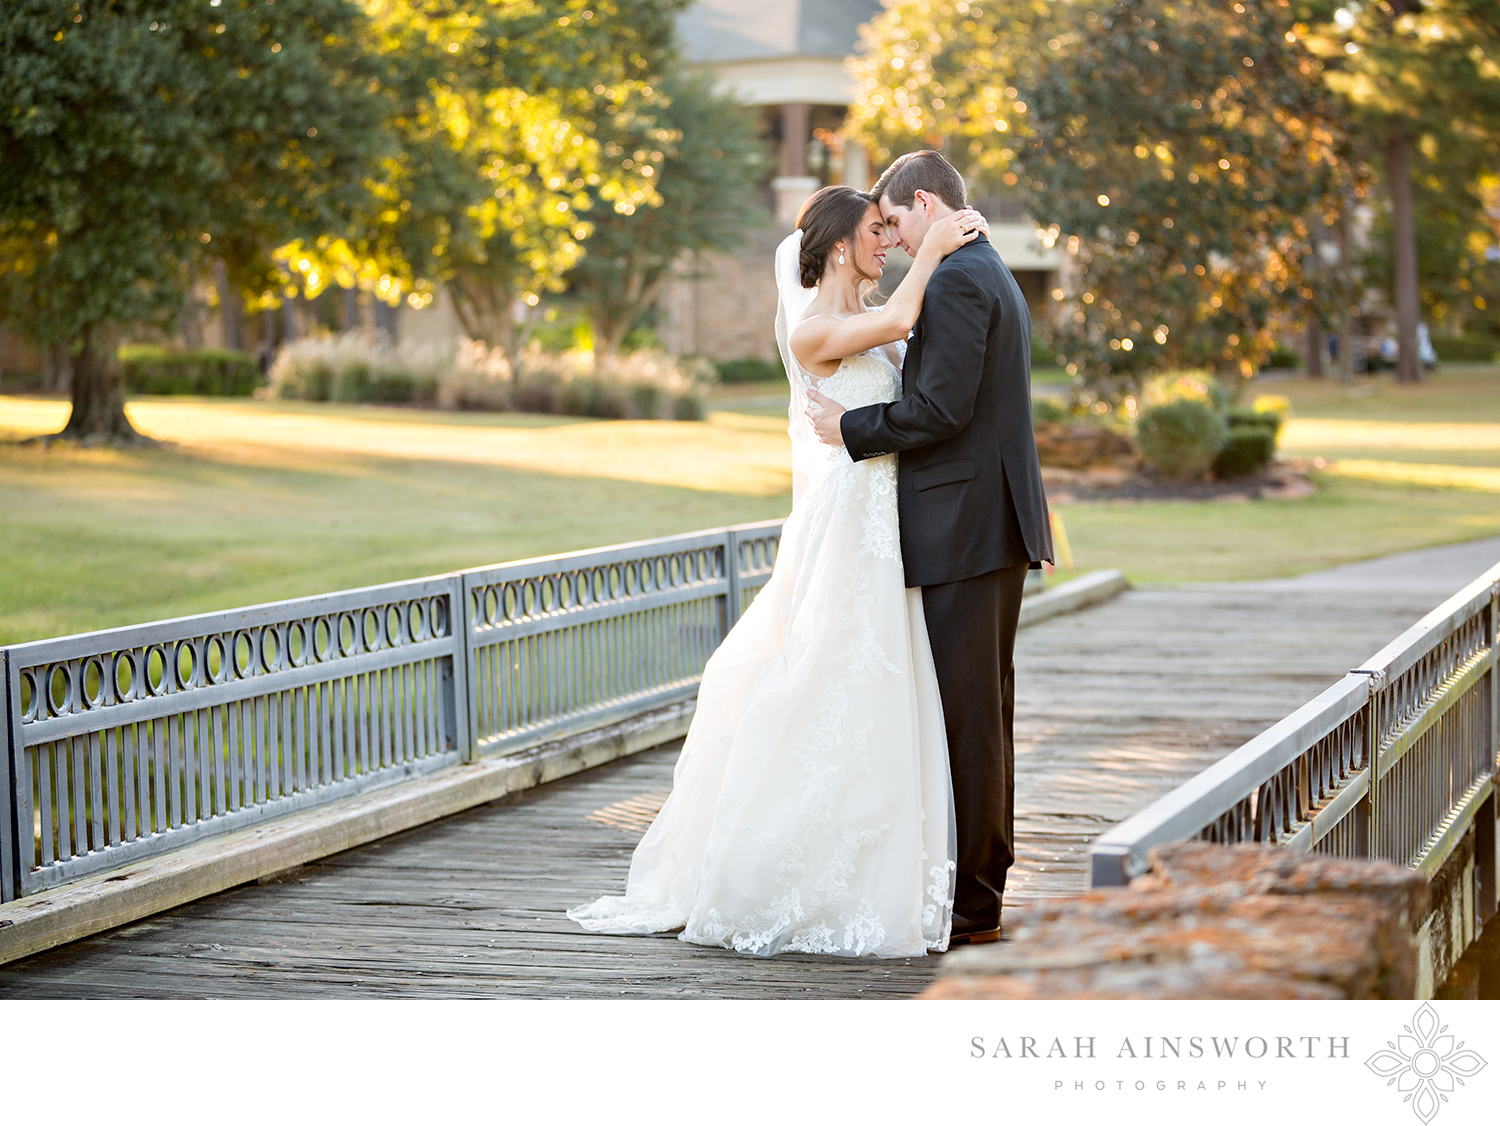 the-woodlands-country-club-palmer-course-wedding-the-woodlands-wedding-venues-best-country-clubs-of-houston_06.jpg